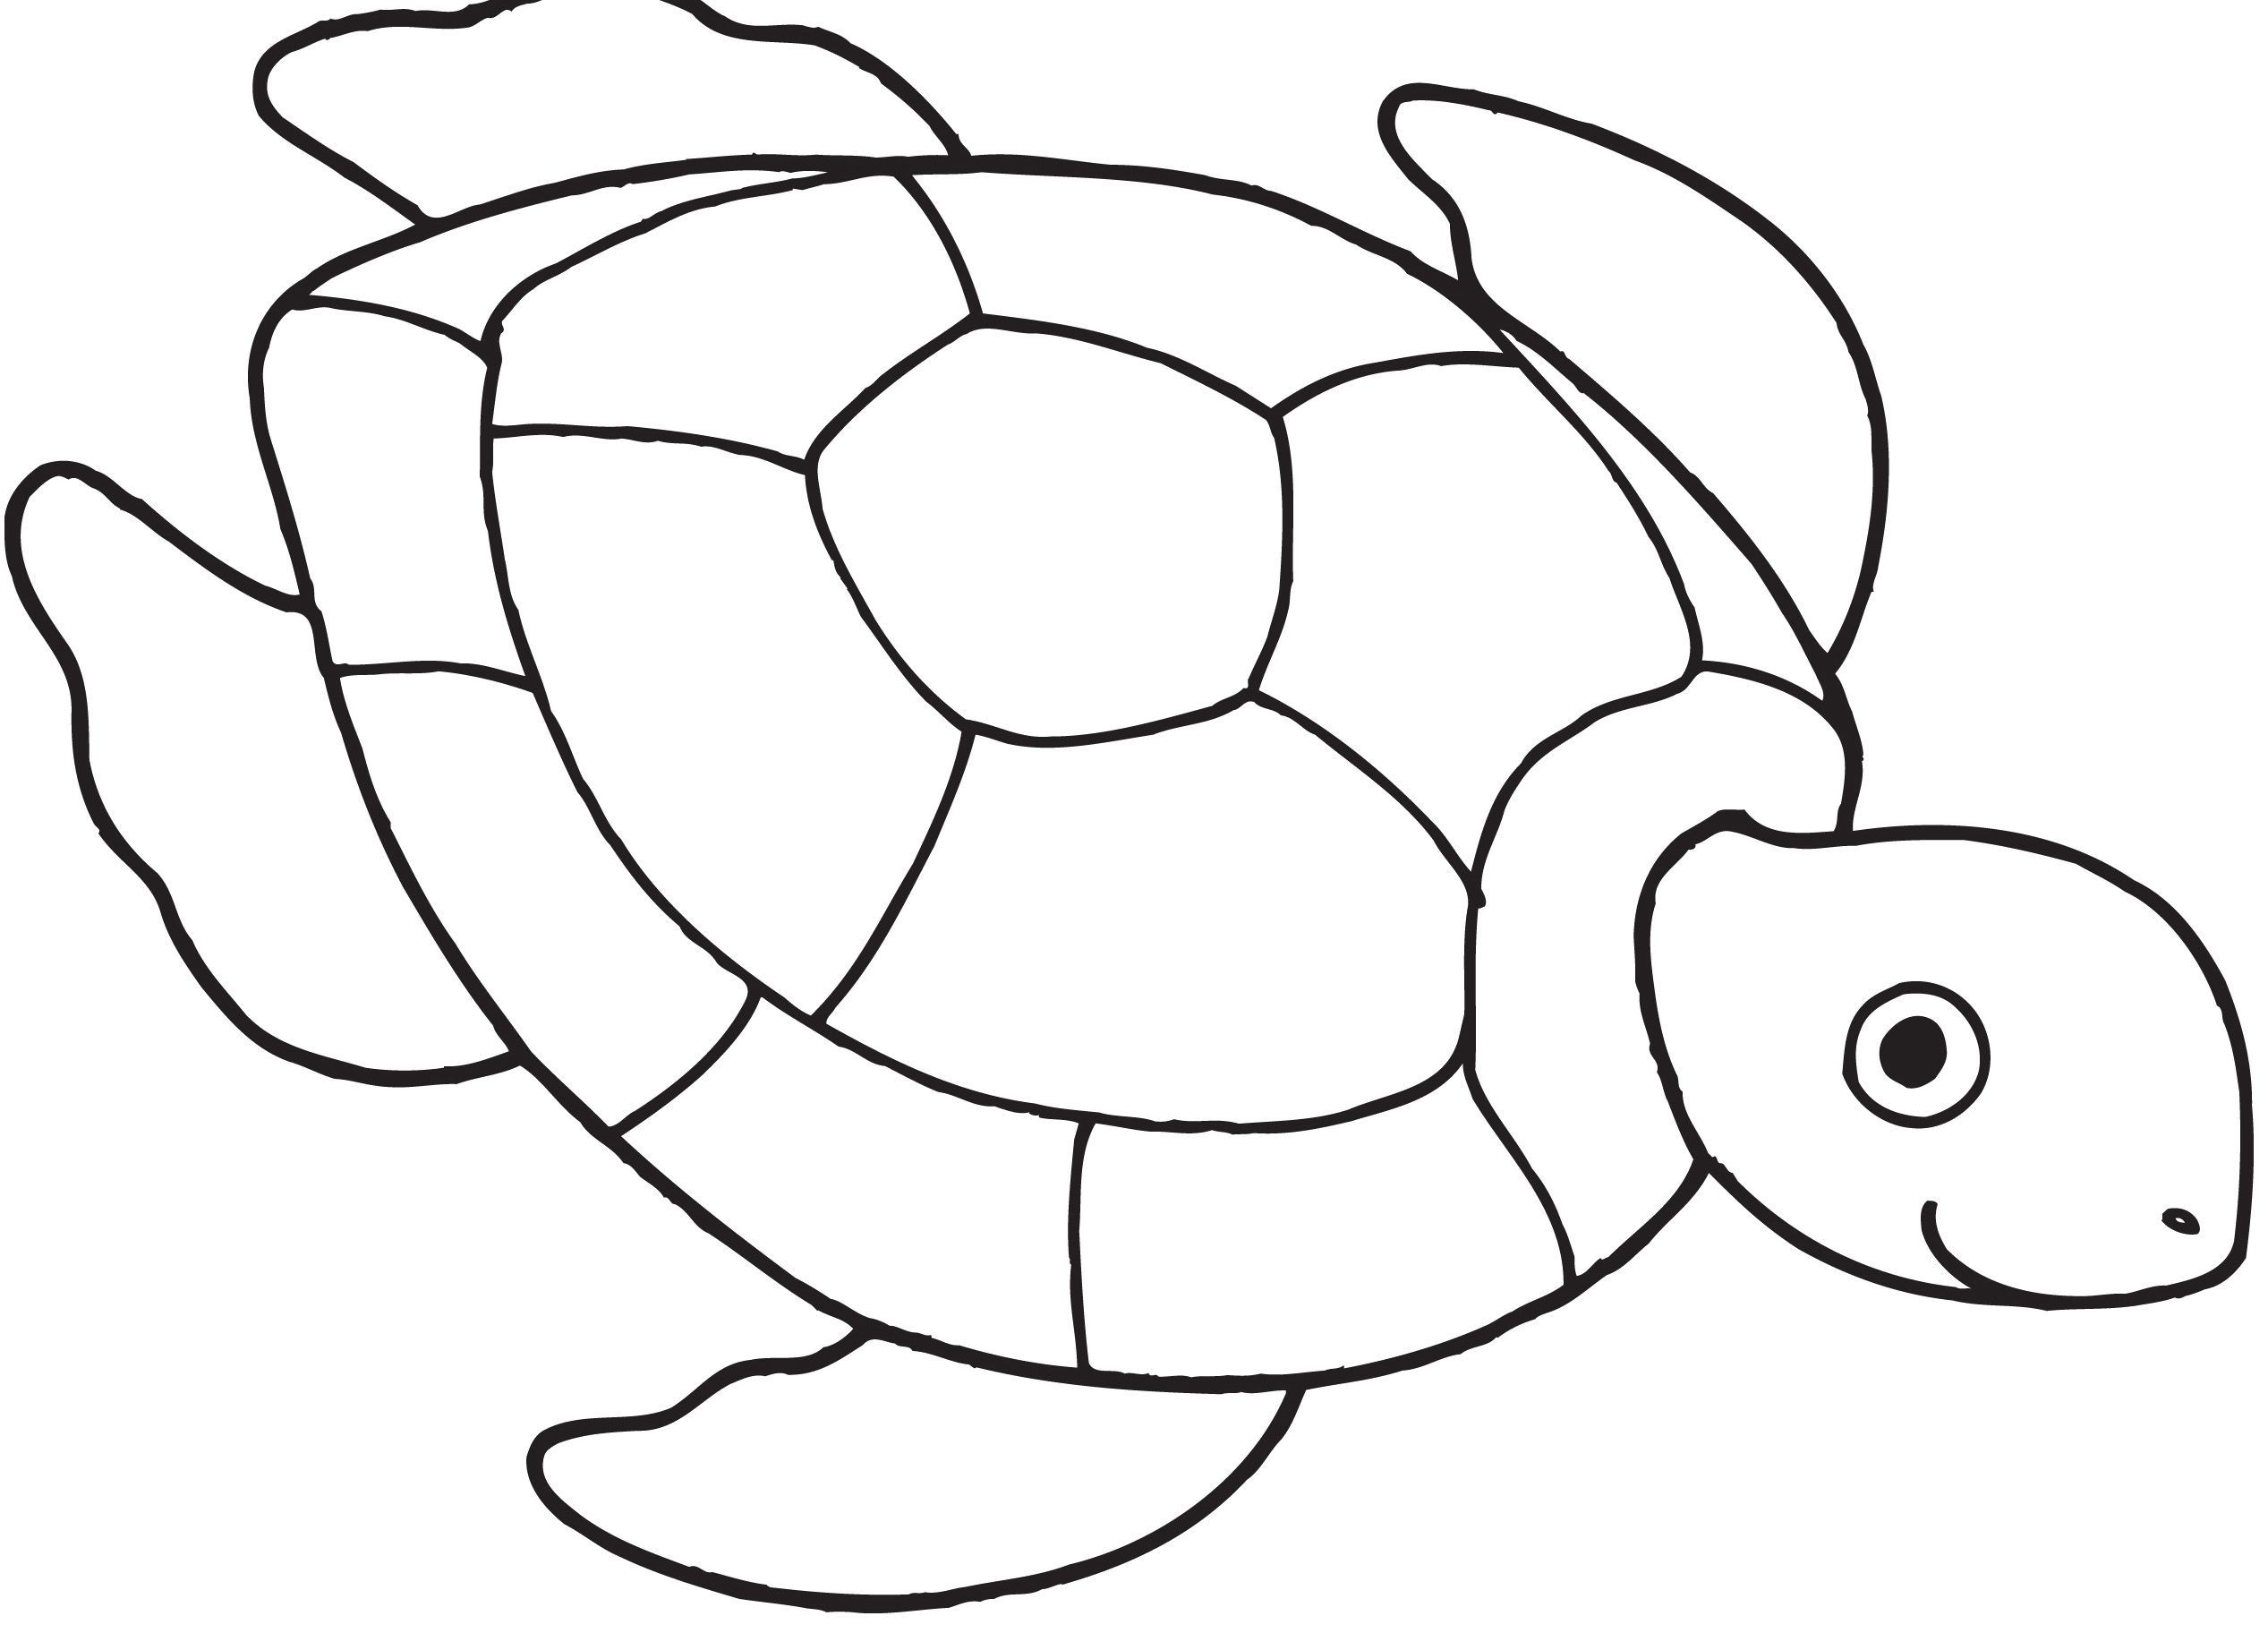 Turtle Coloring Pages Kids Turtle Drawing Sea Turtle Drawing Turtle Coloring Pages